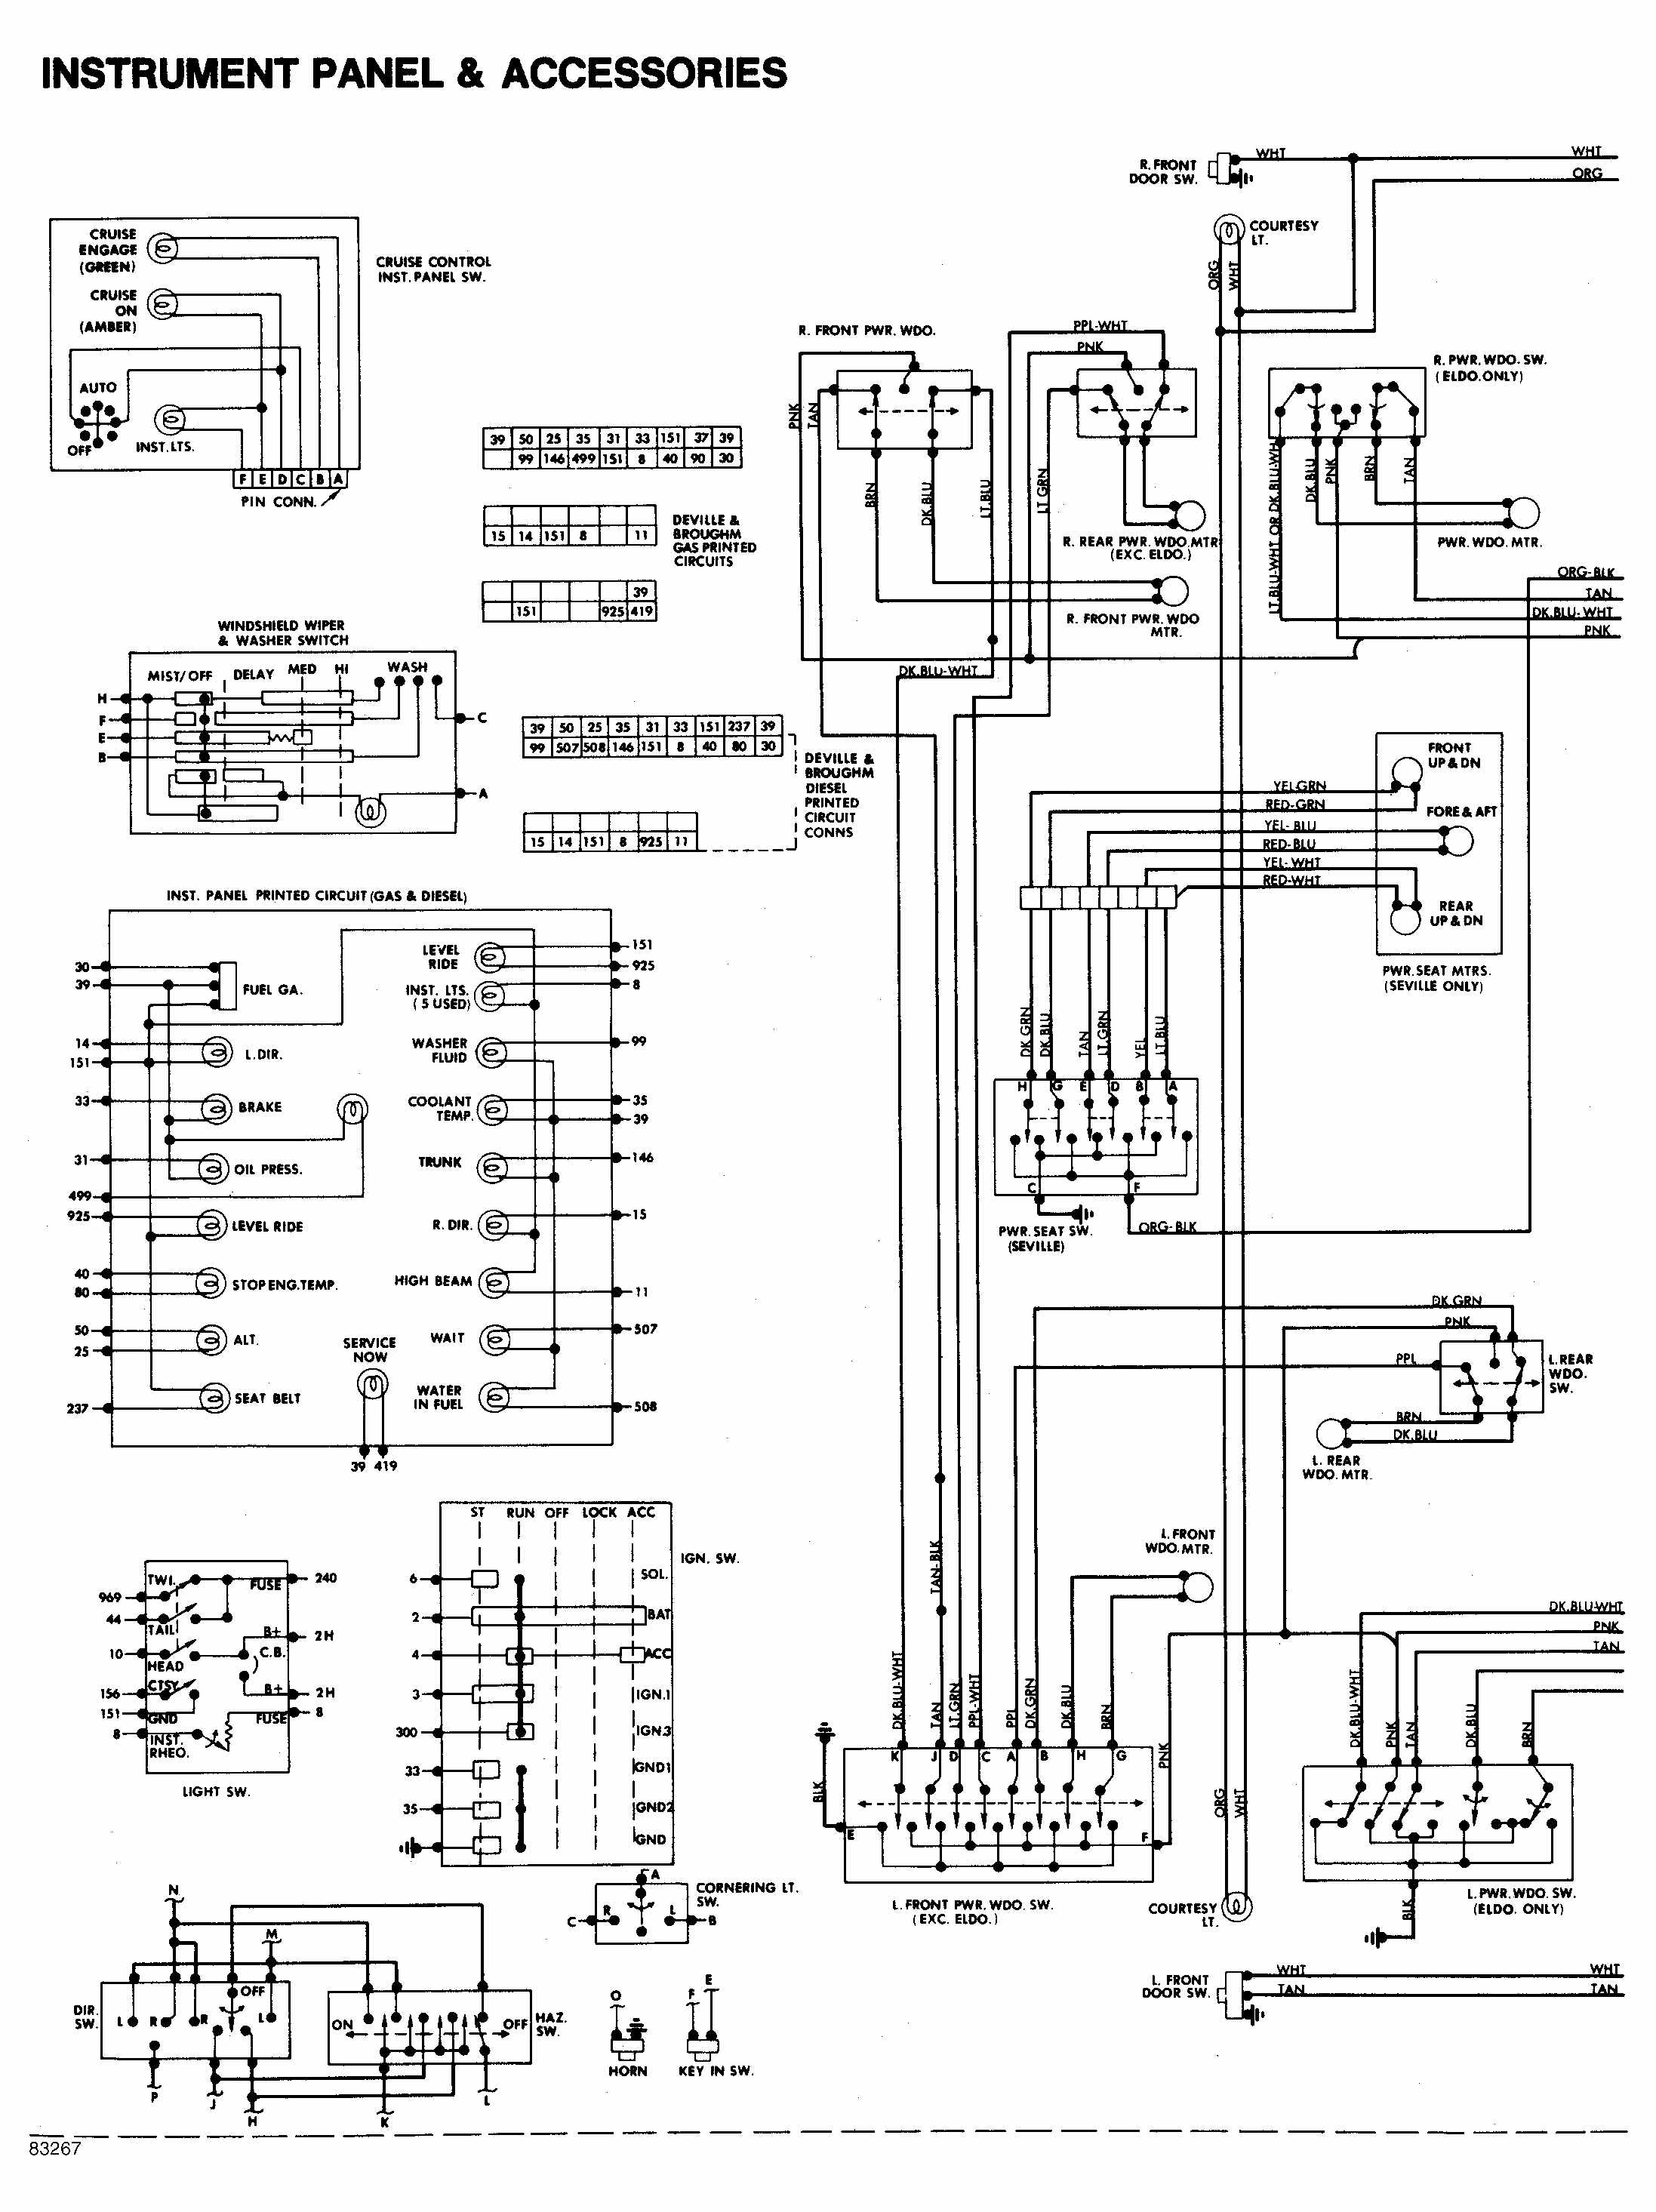 ethernet wiring diagram cat5e